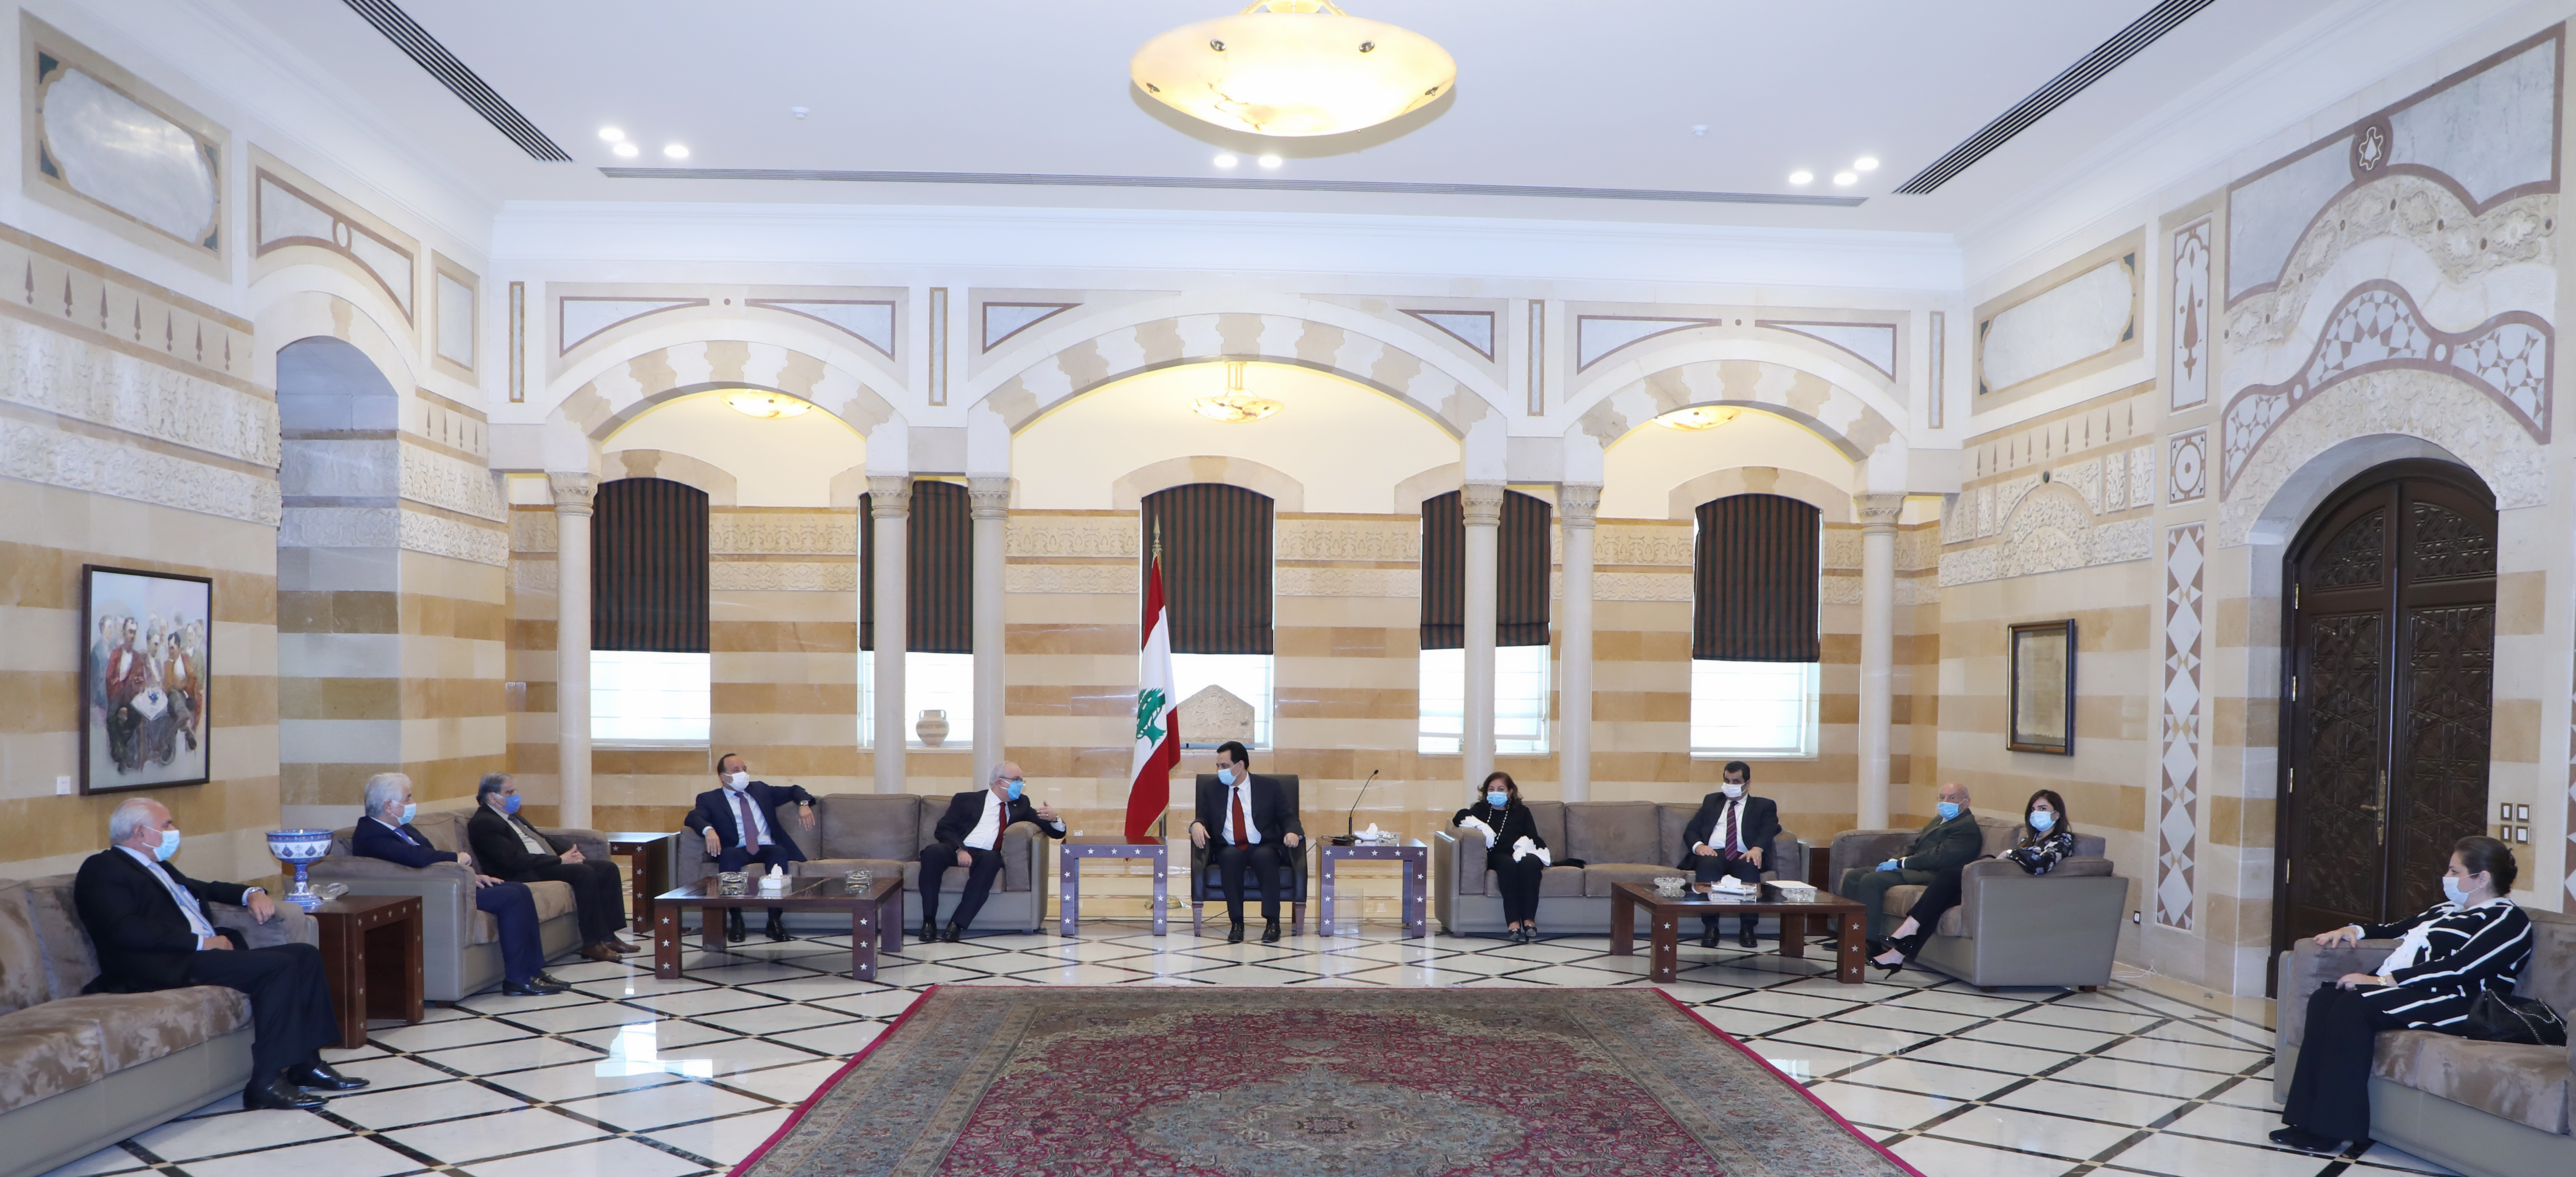 Pr Minister Hassan Diab meets a Delegation from el Makassed 1